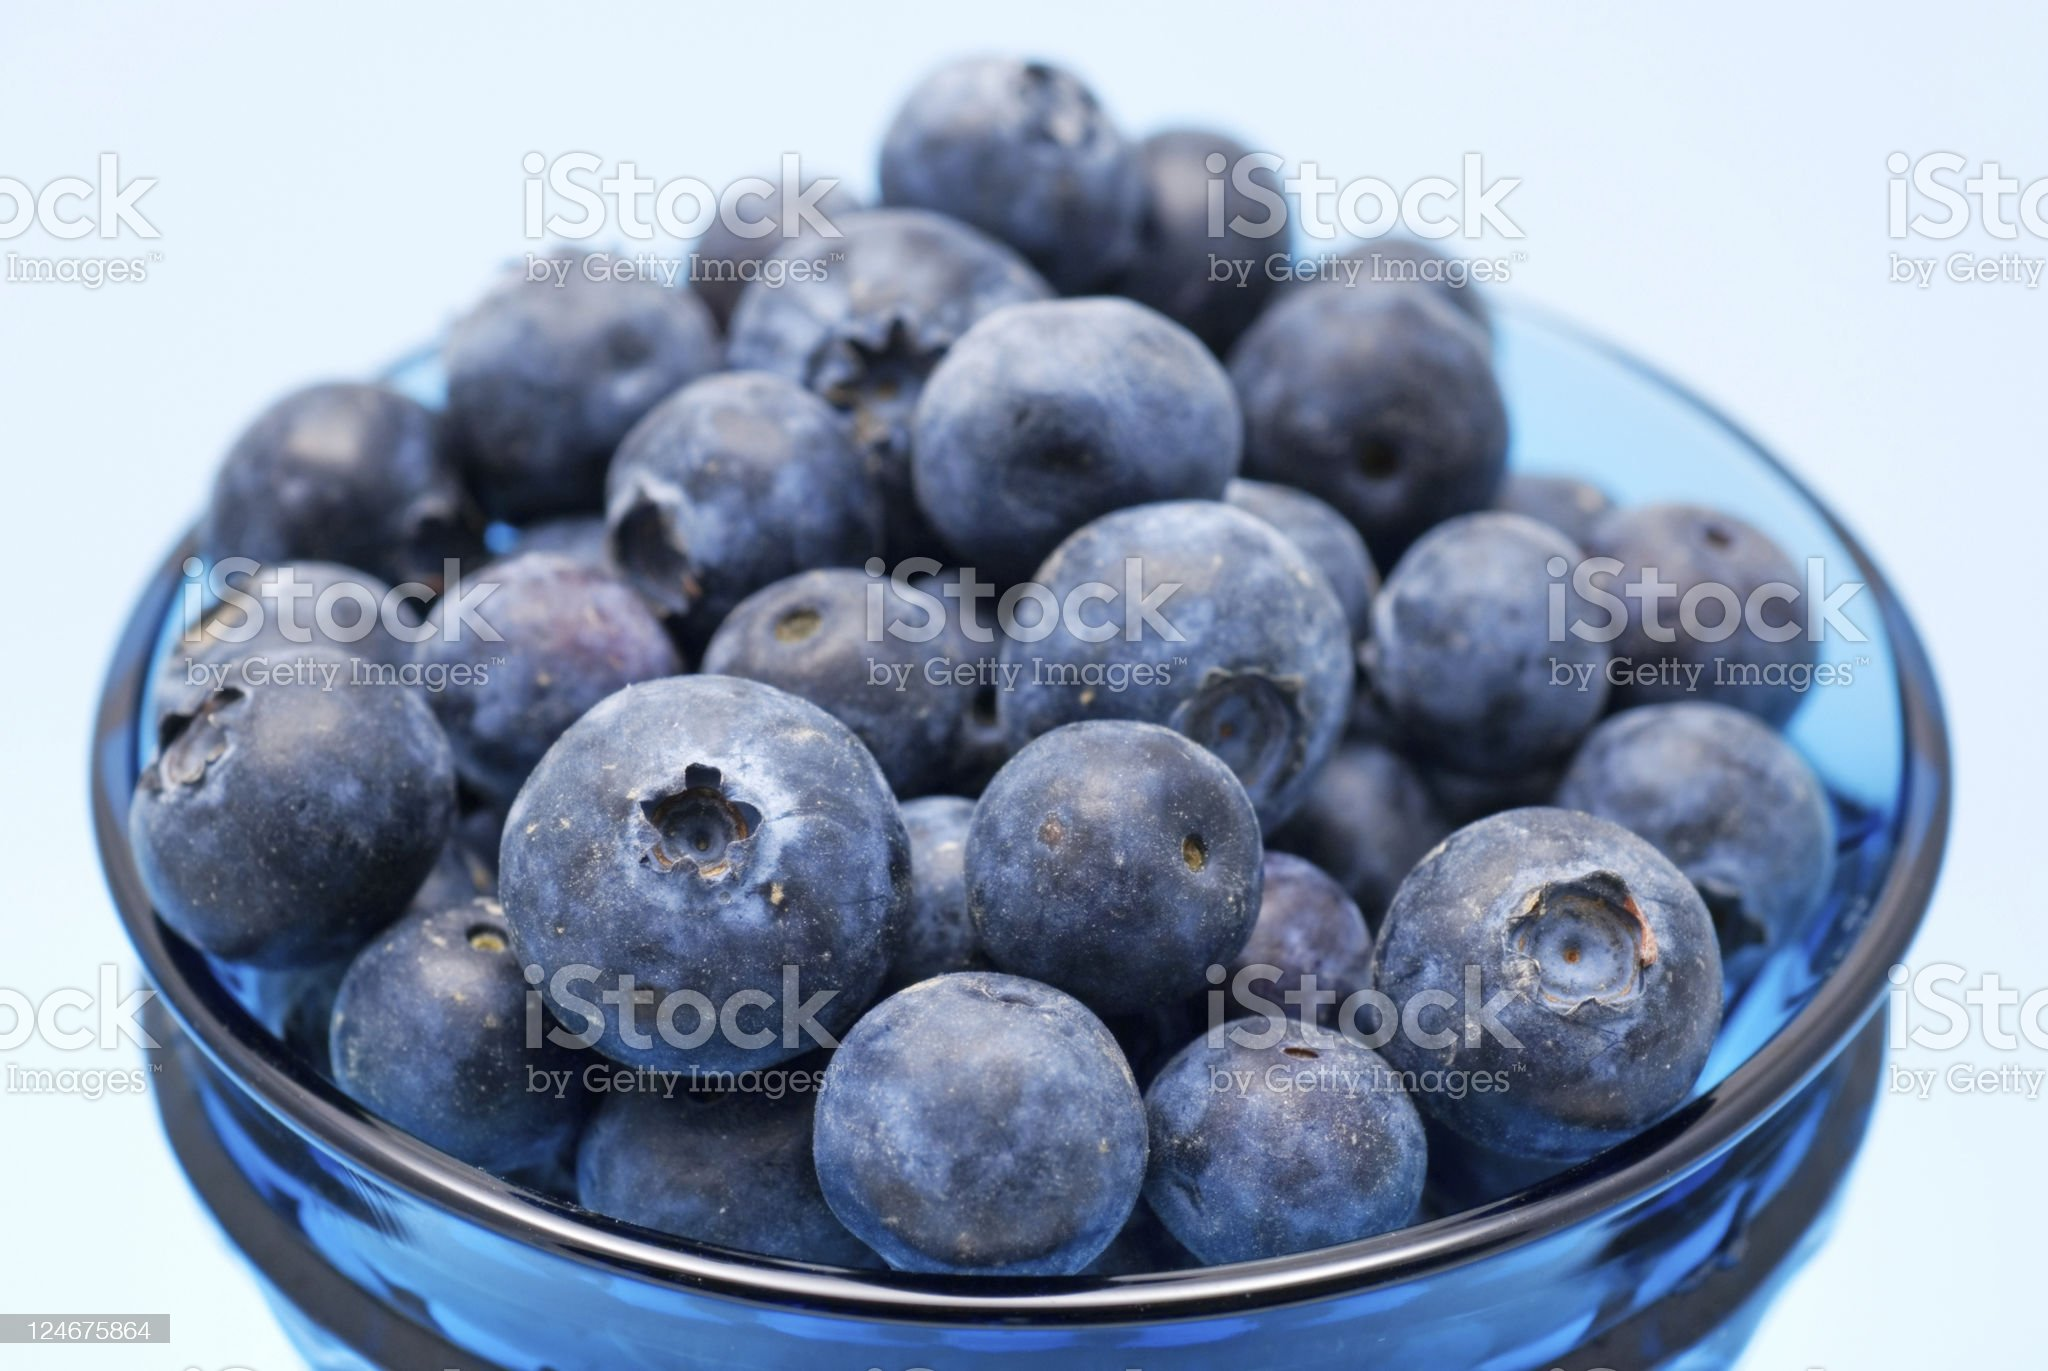 Blueberries in vintage glassware royalty-free stock photo